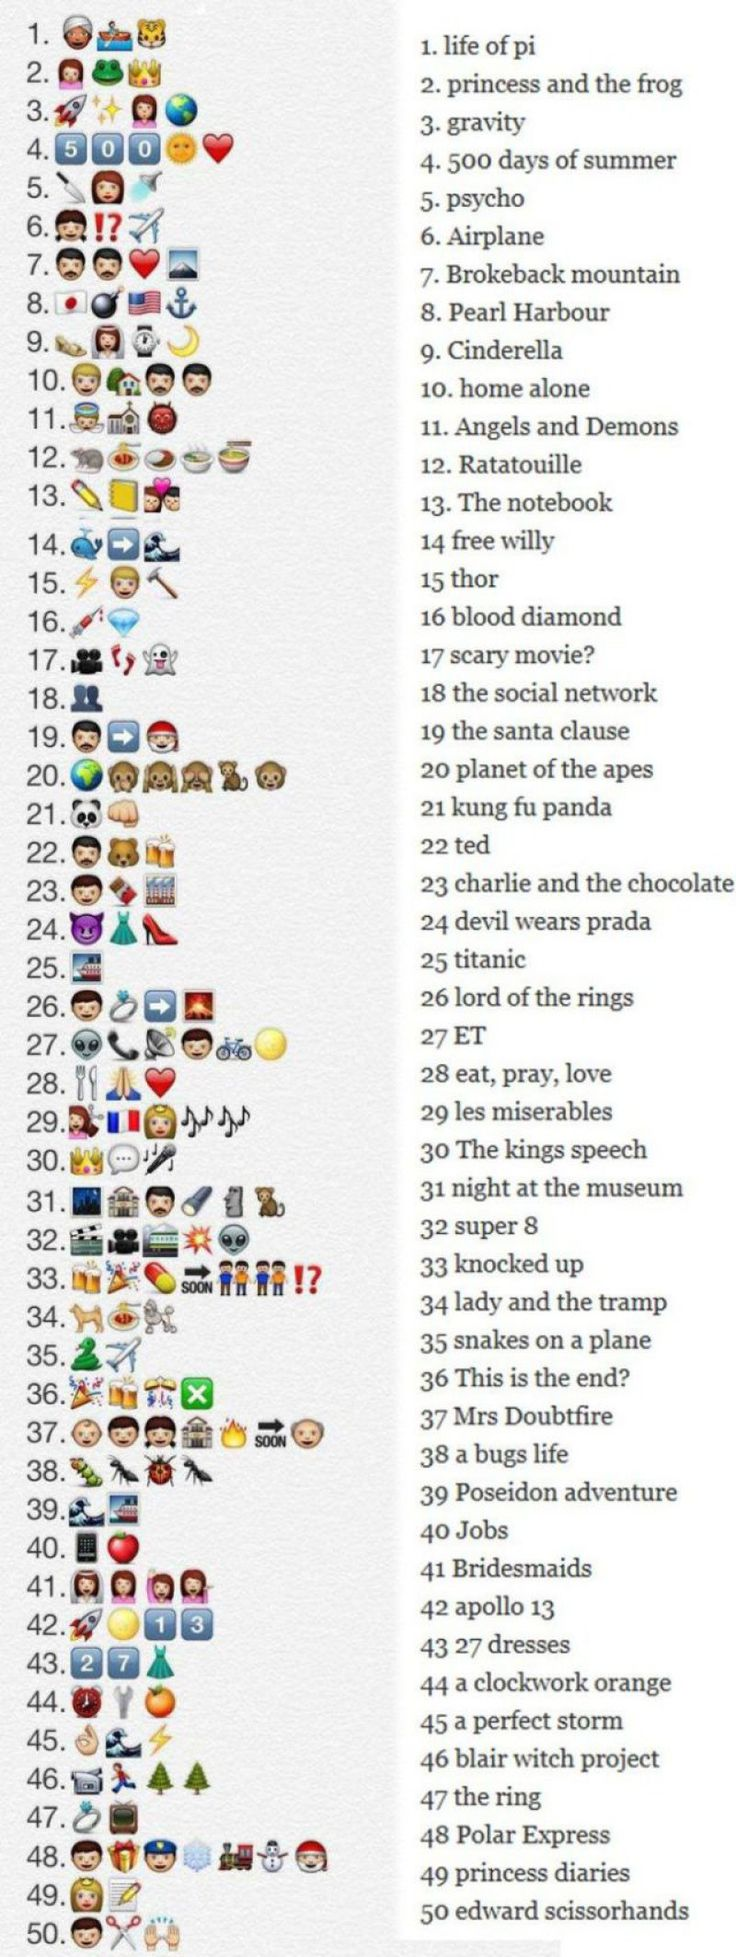 Can You Guess The Movie Based on These Emojis?